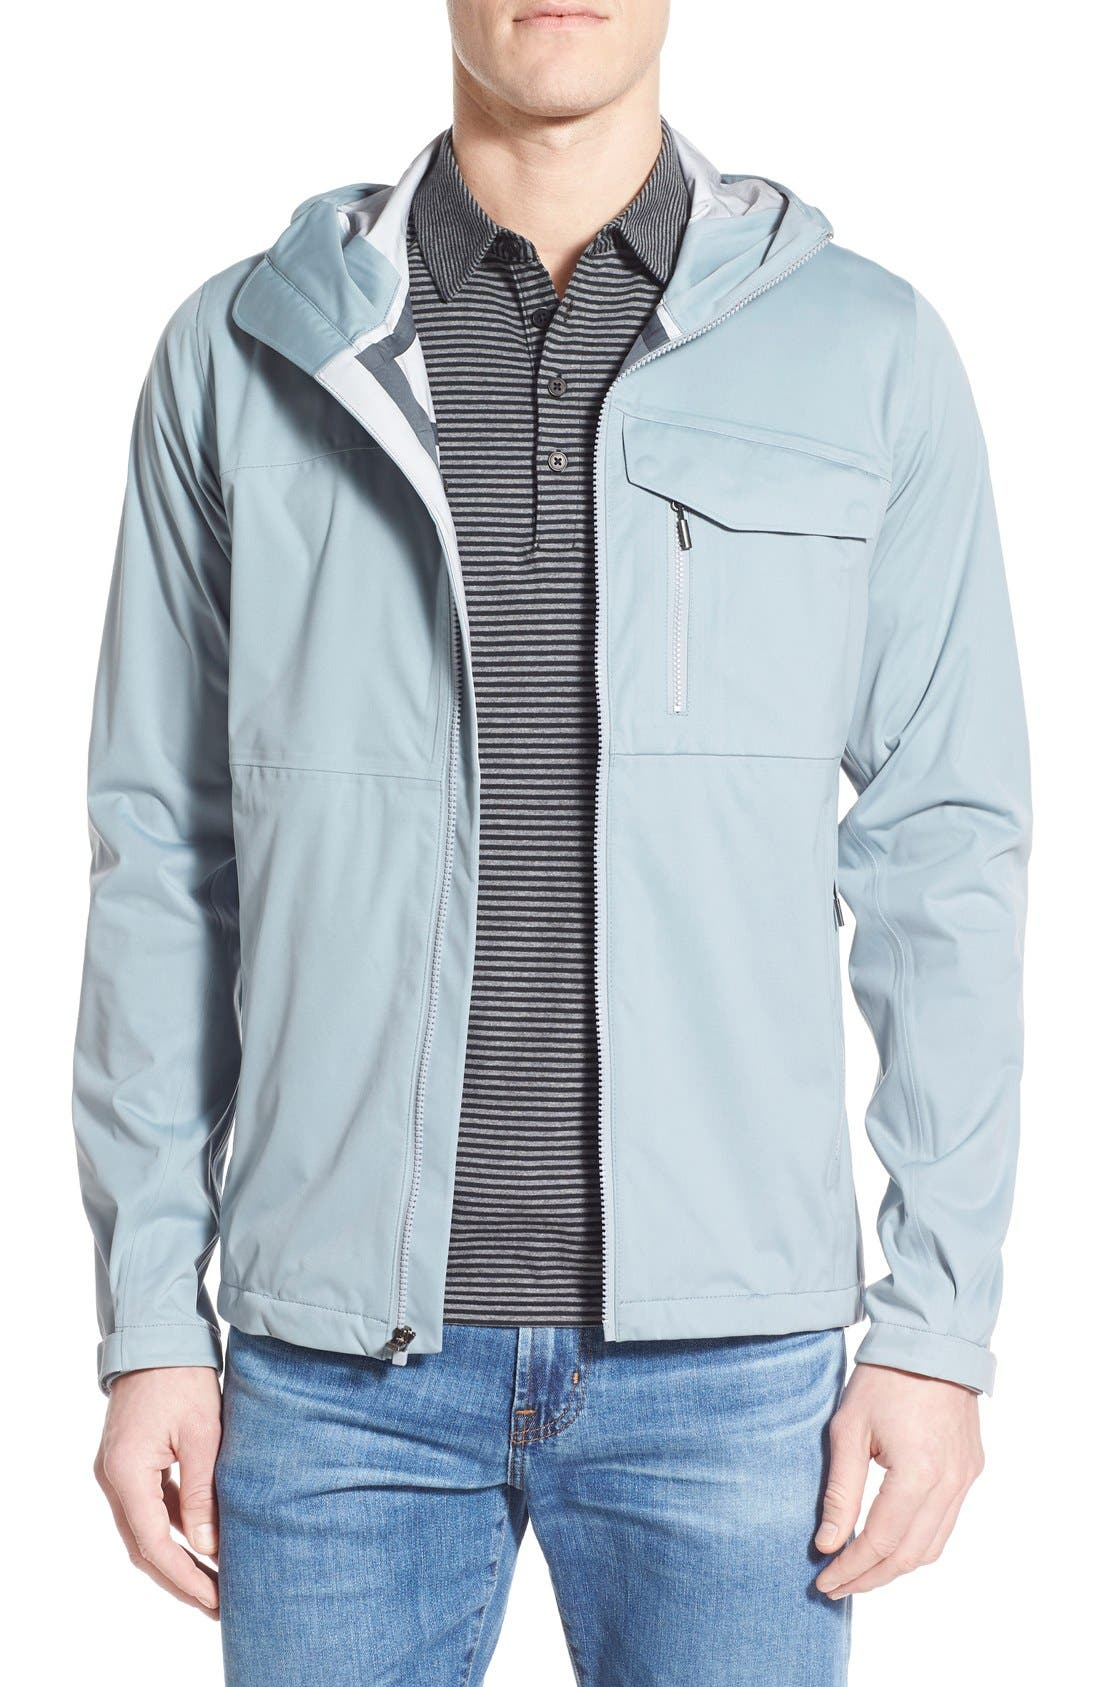 Nau 'Rebound' Regular Fit Zip Hooded Jacket